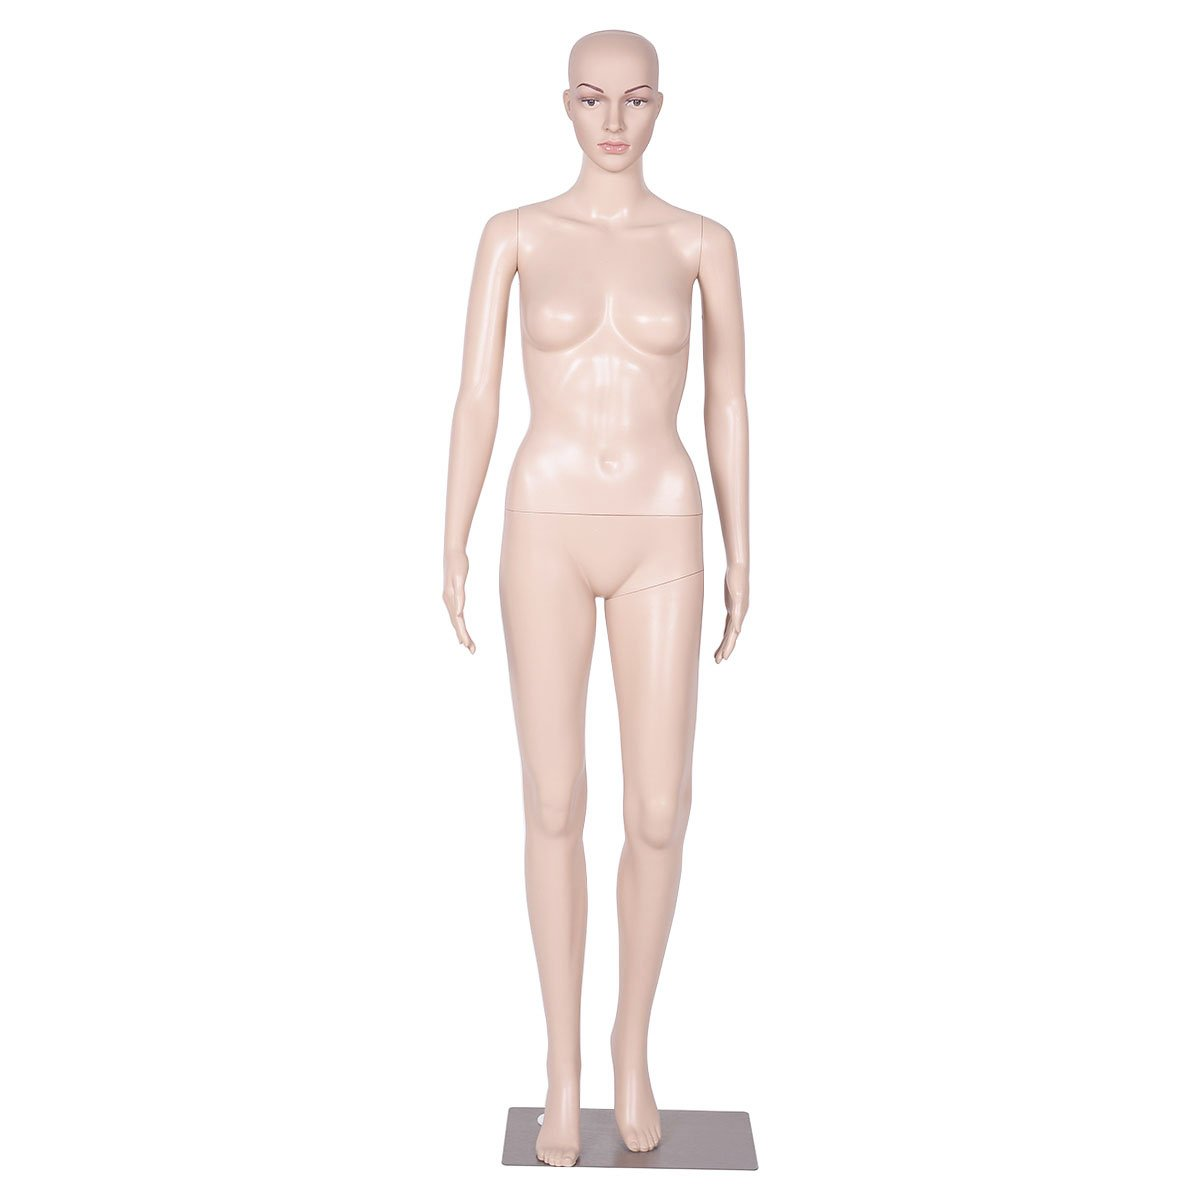 Giantex Female Mannequin Plastic Realistic Display Head Turns Dress Form w/Base (Natural Style 3) HW51119